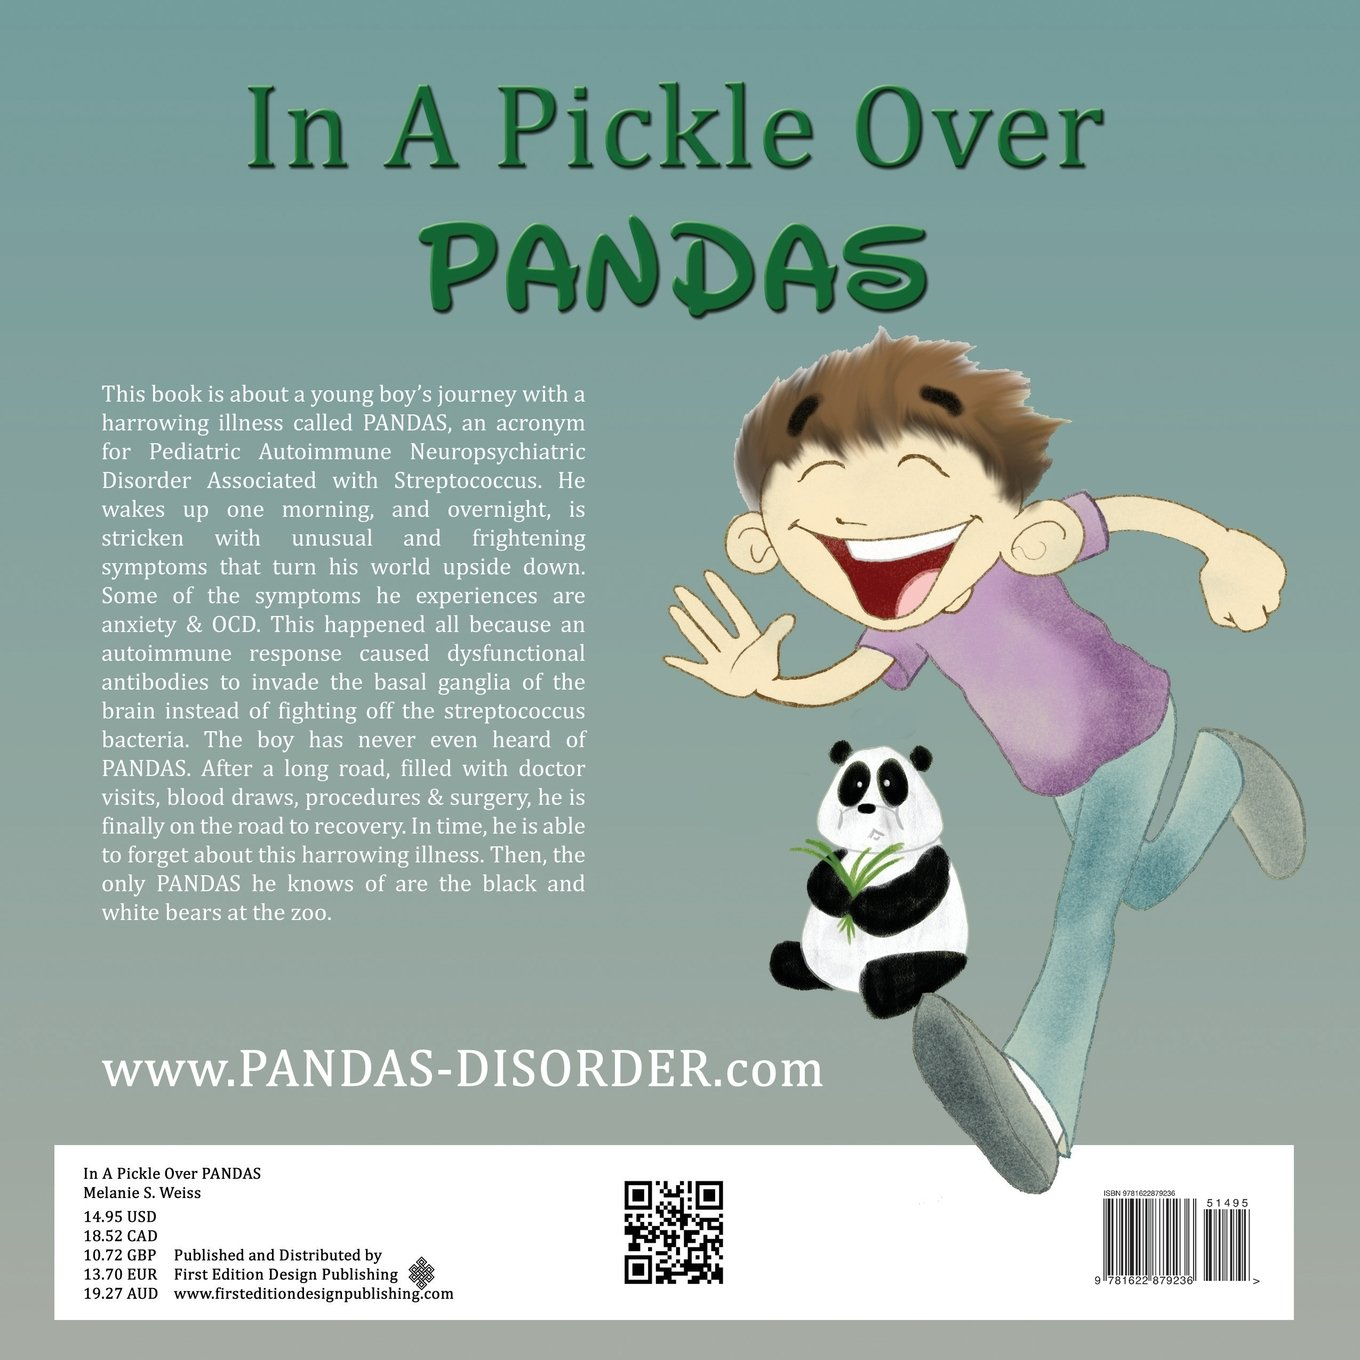 In A Pickle Over Pandas Melanie S Weiss 9781622879236 Amazon Com Books